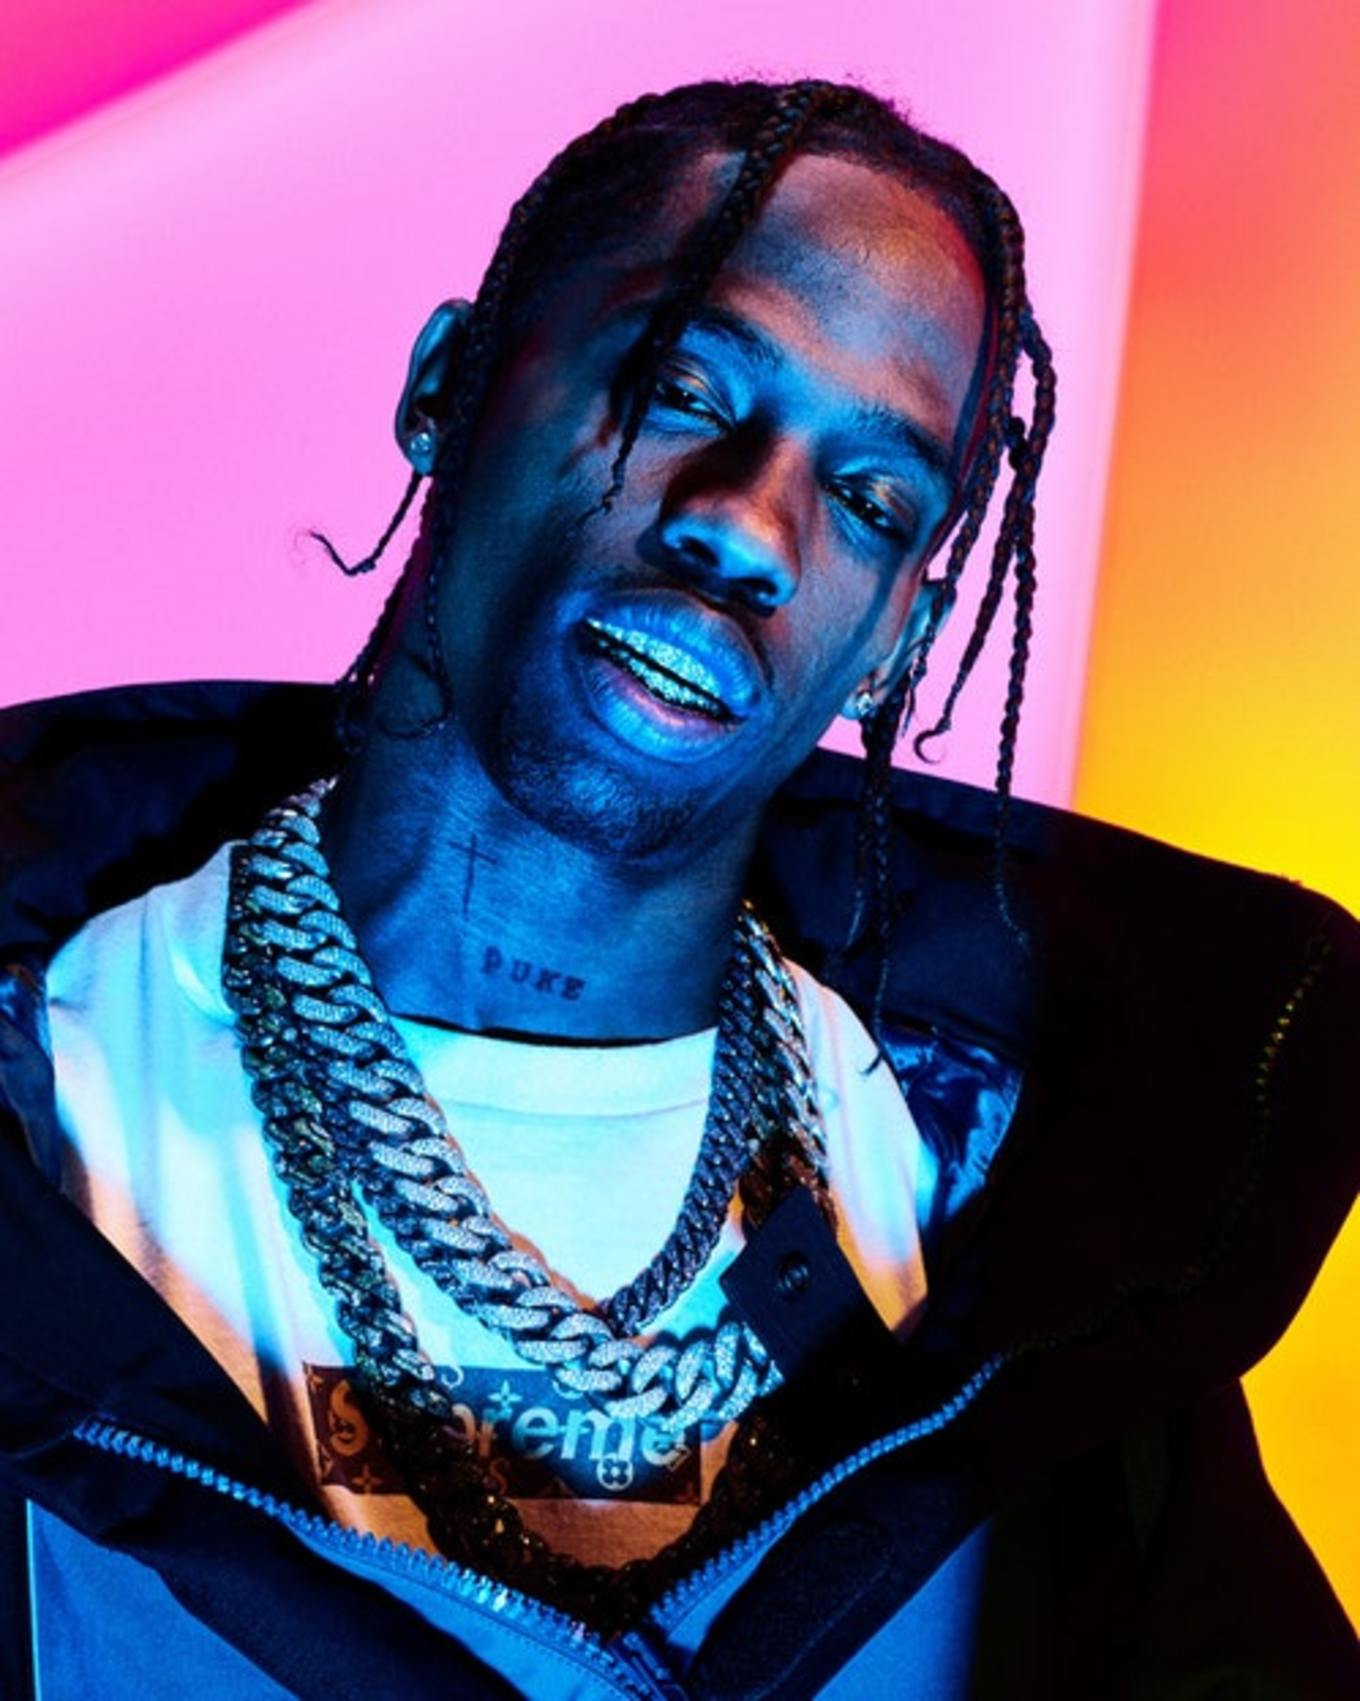 25ae95889a5d TRAVIS SCOTT @ OHM Nightclub 18+ ASTROWORLD Official After Party - Tickets  - OHM Nightclub, Los Angeles, CA - December 20, 2018